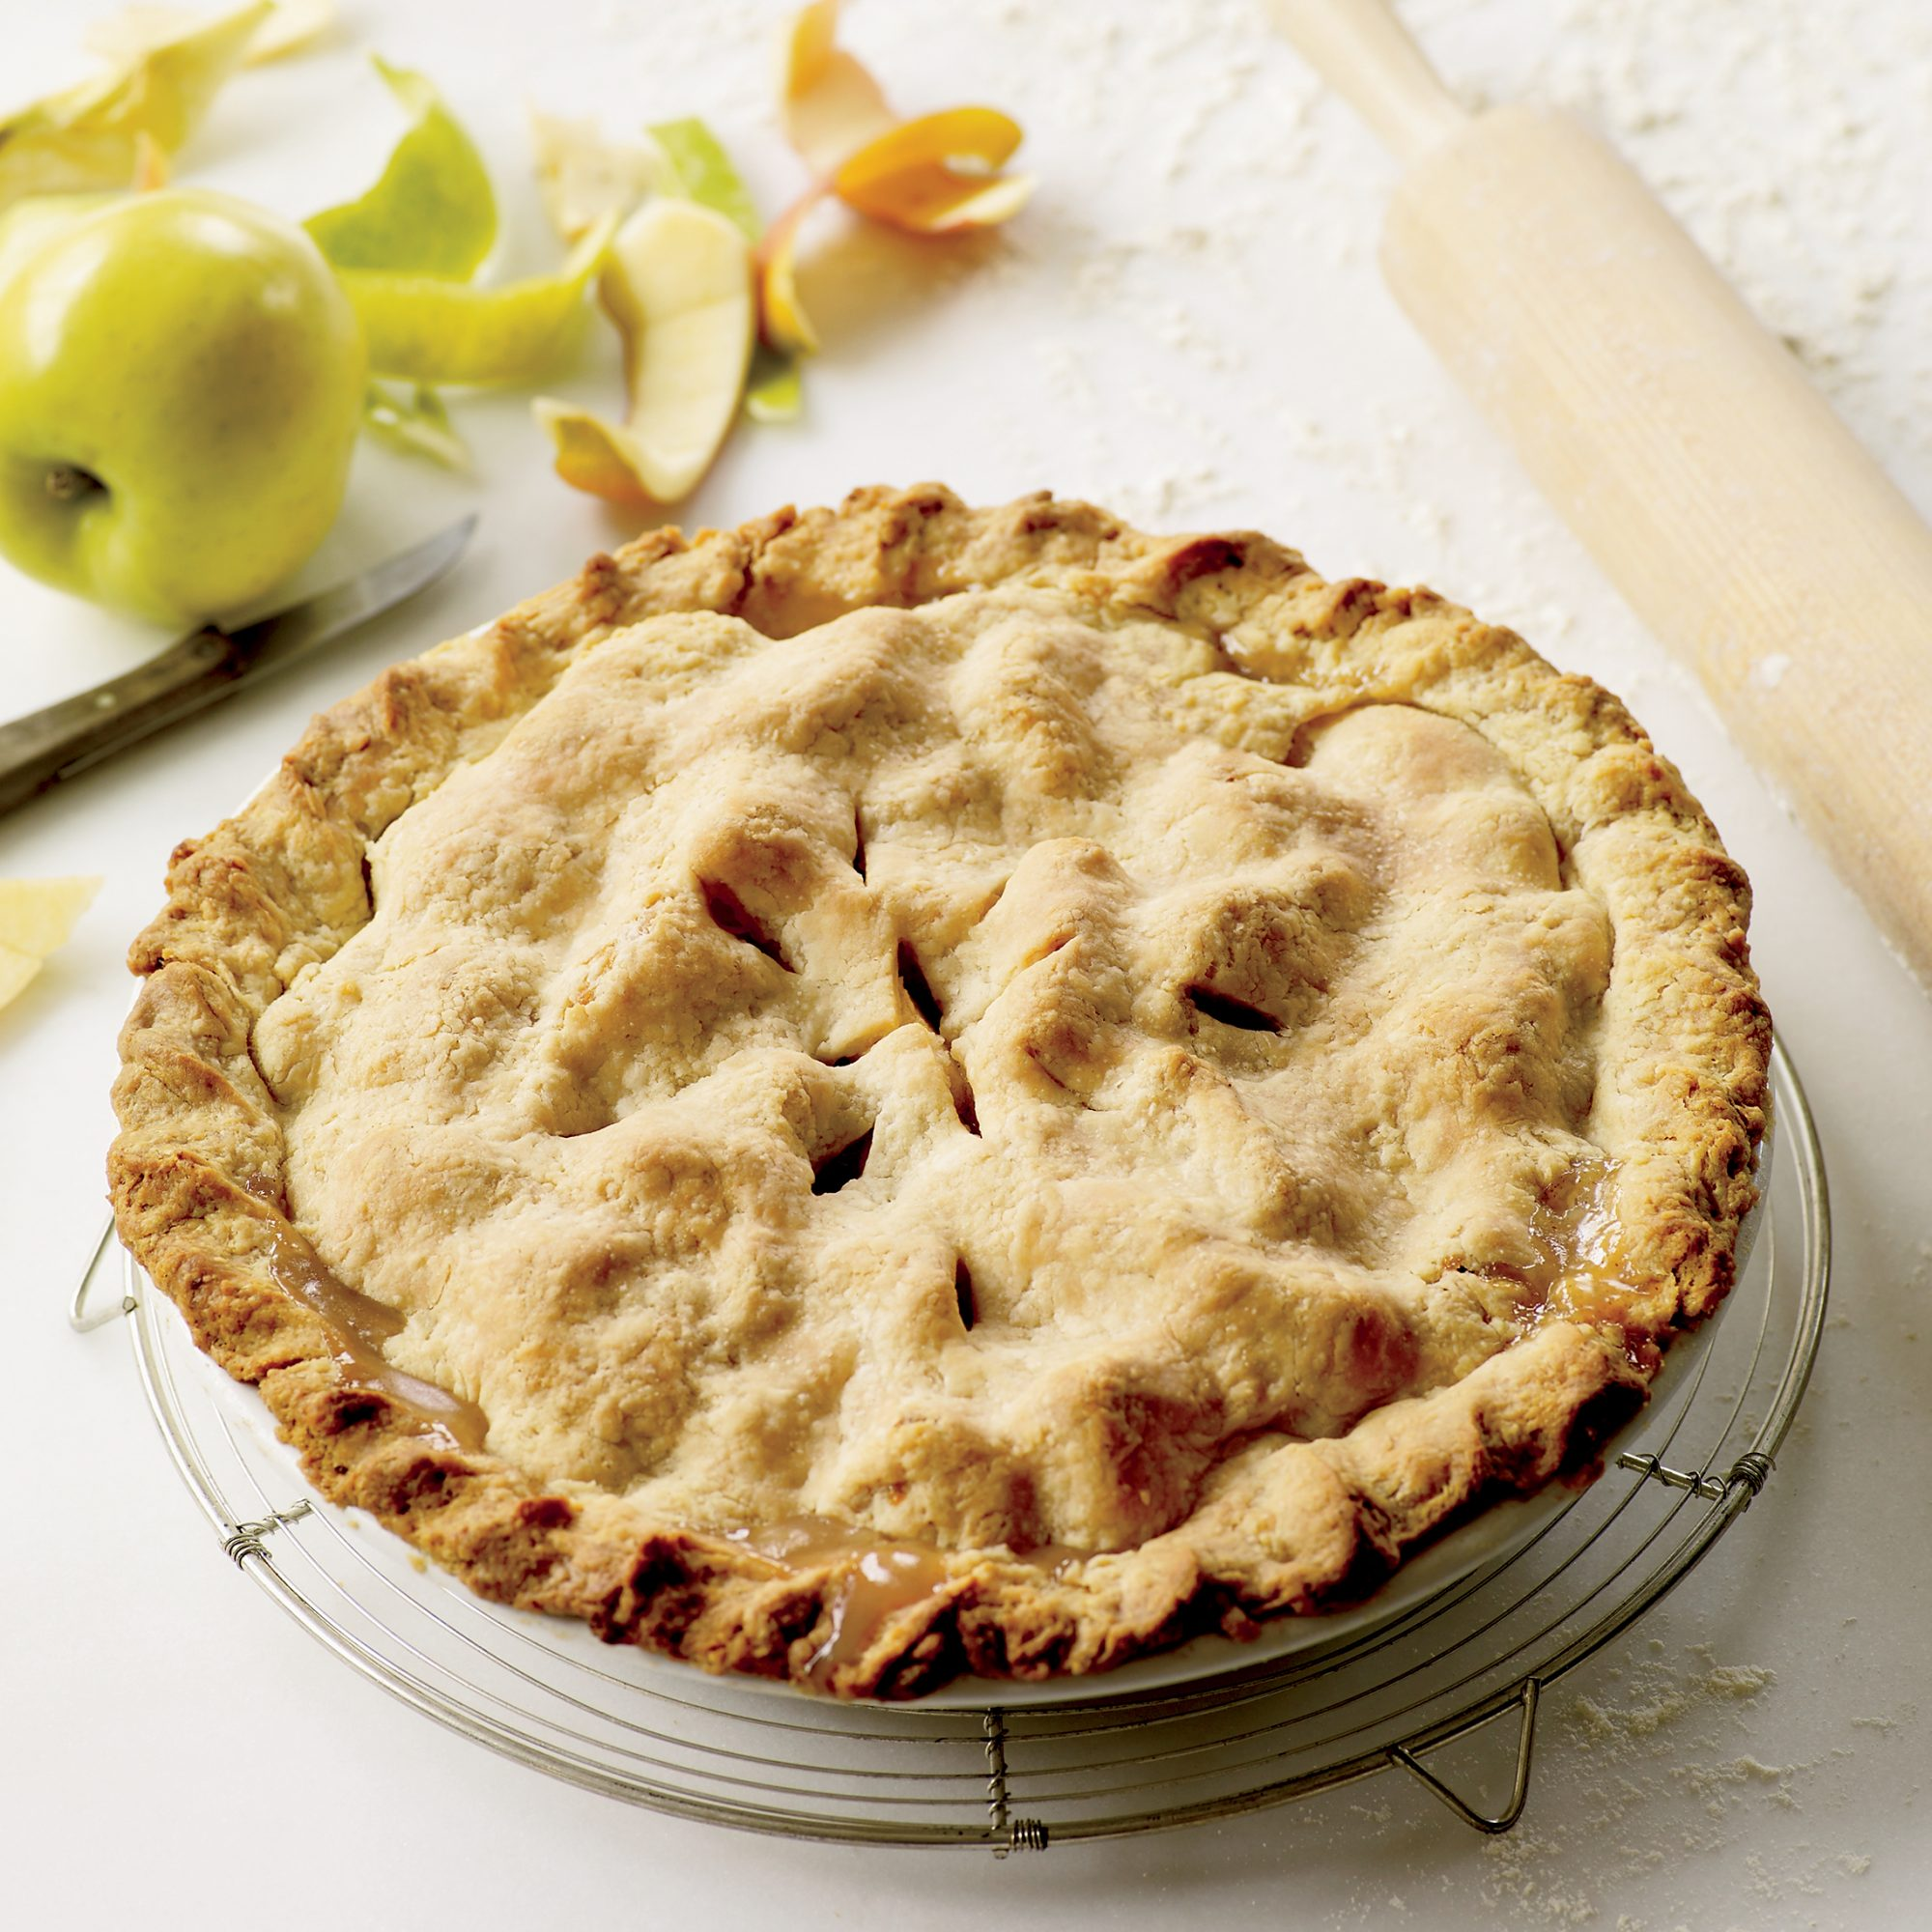 200811-r-double-crust-apple-pie.jpg